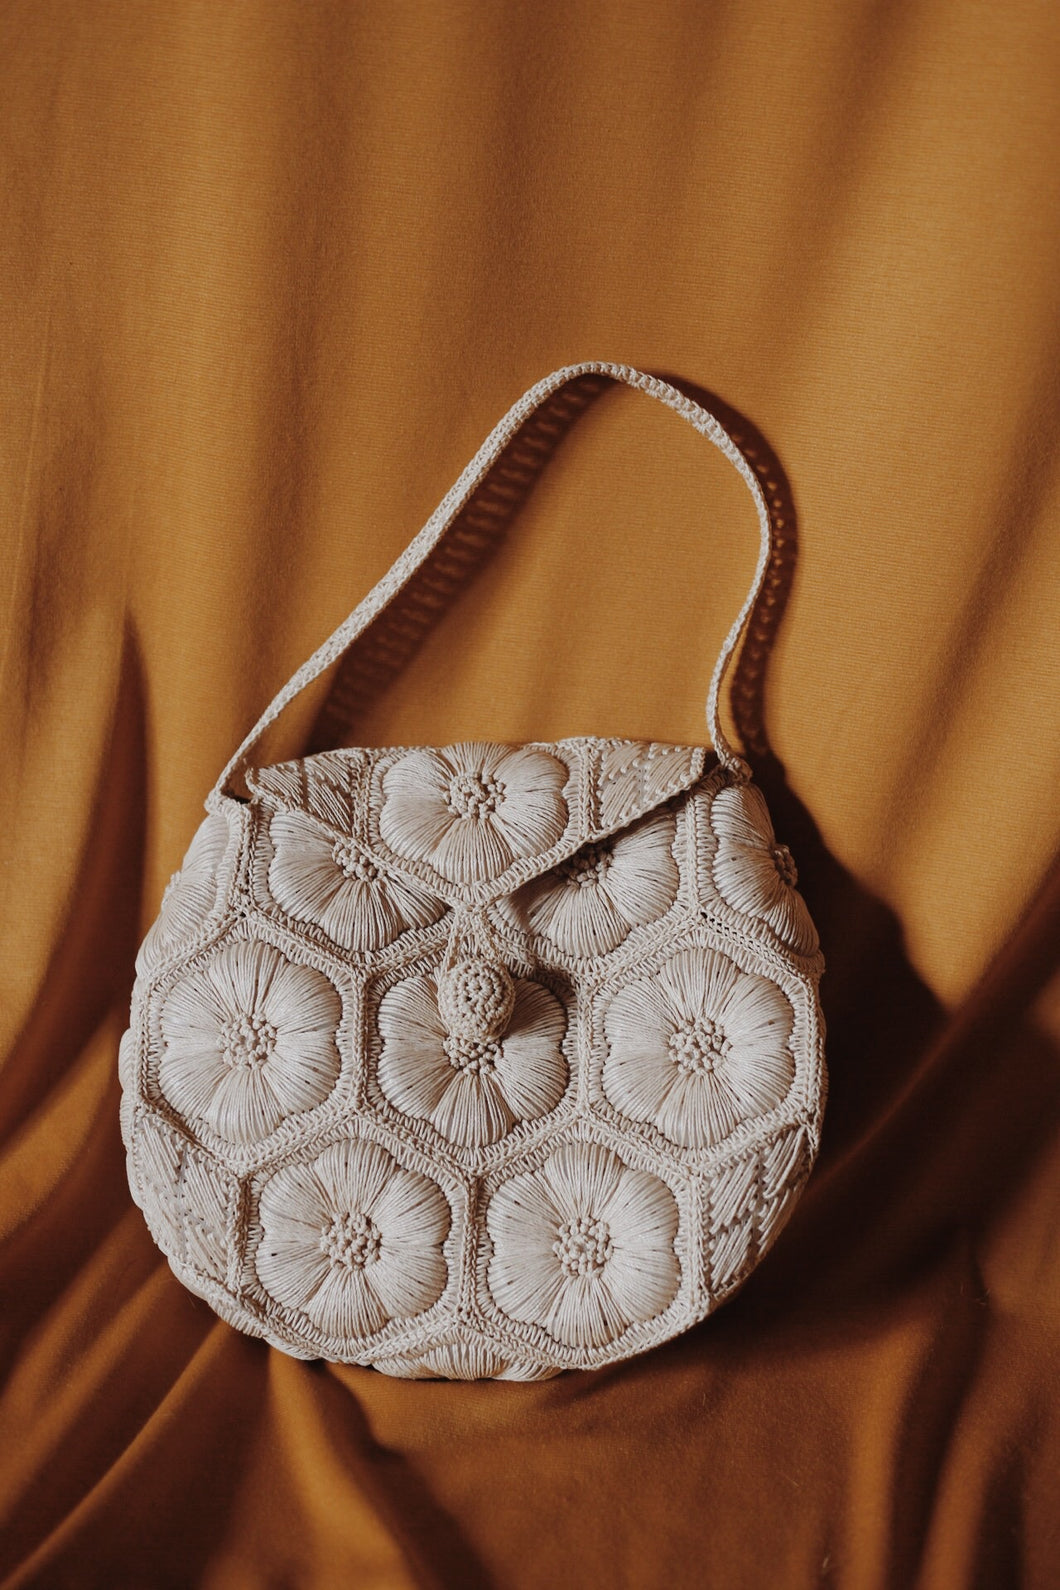 Woven Floral Bag